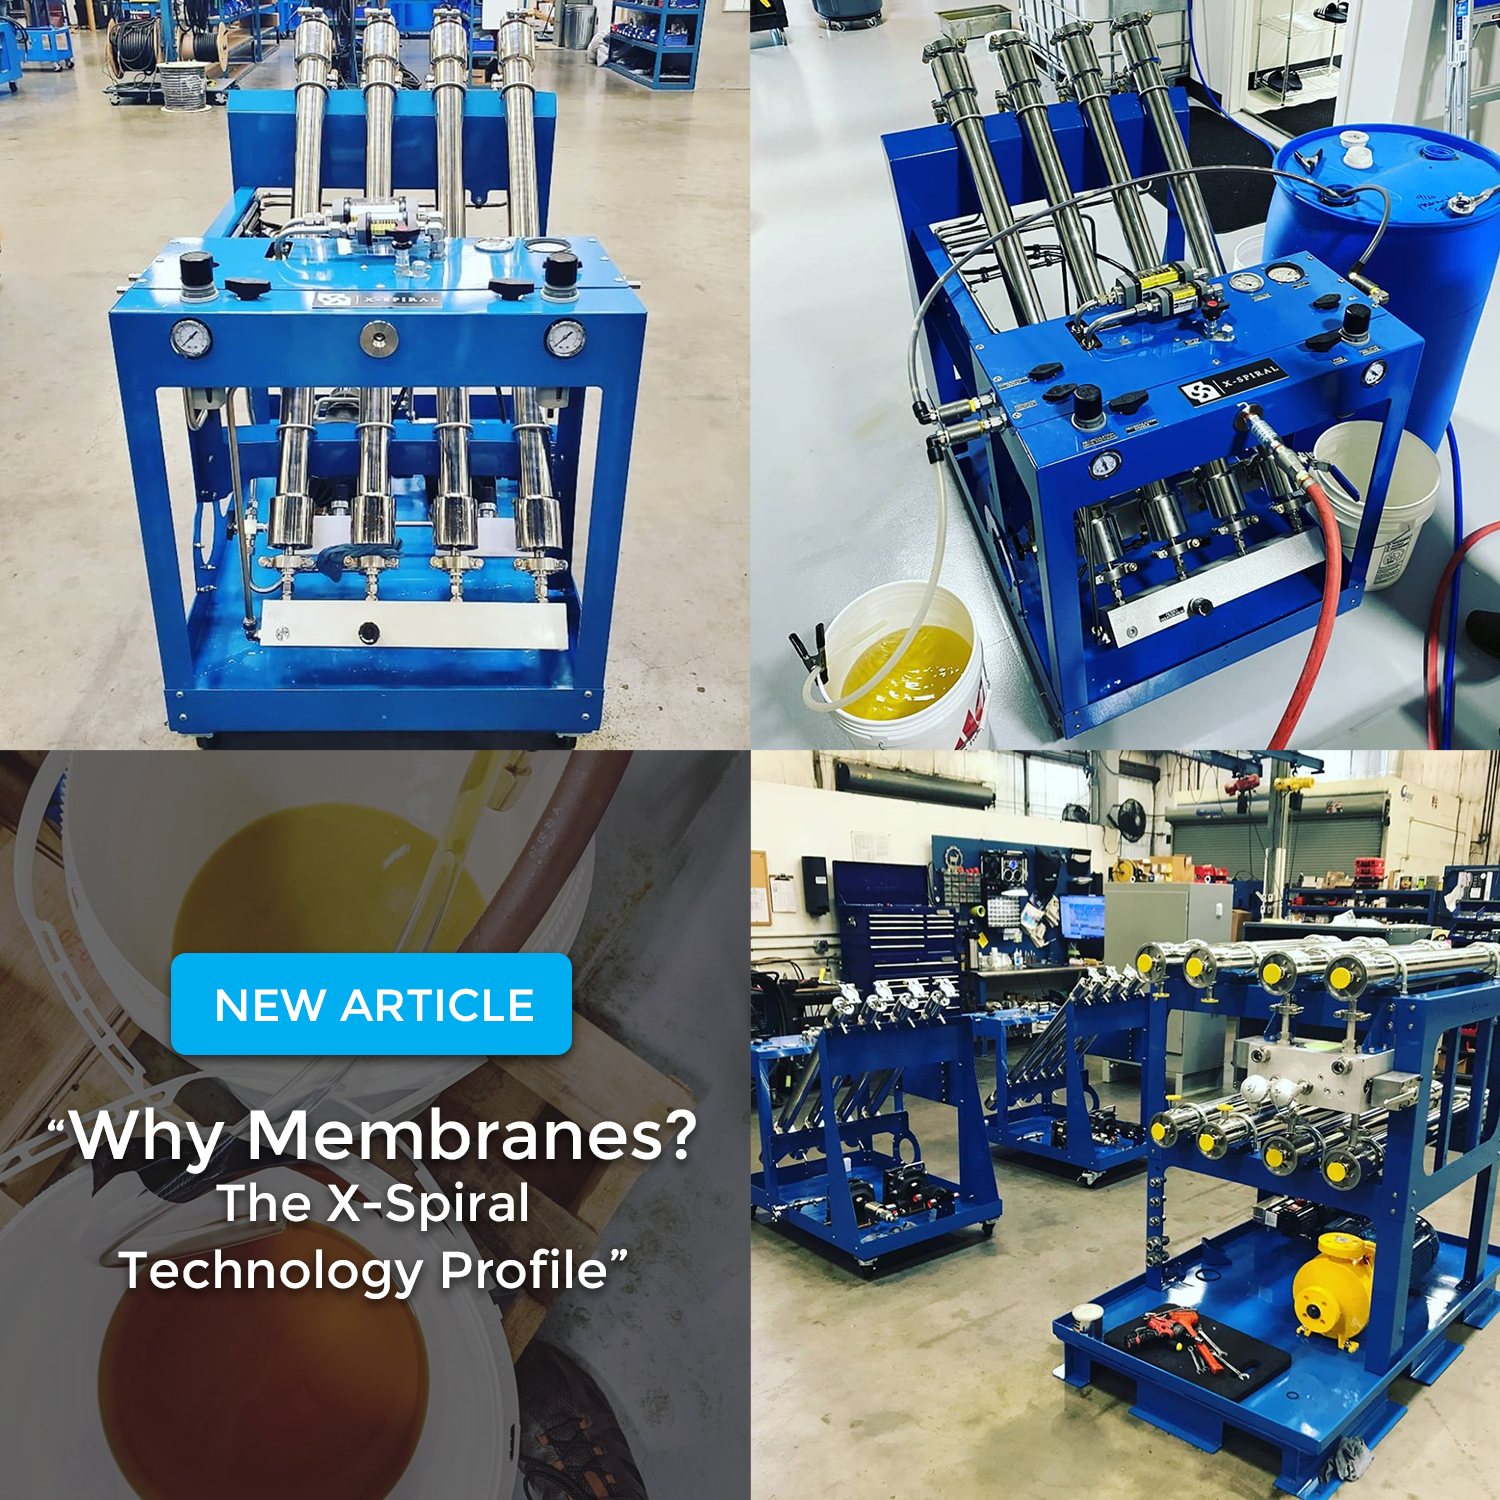 whymembranes